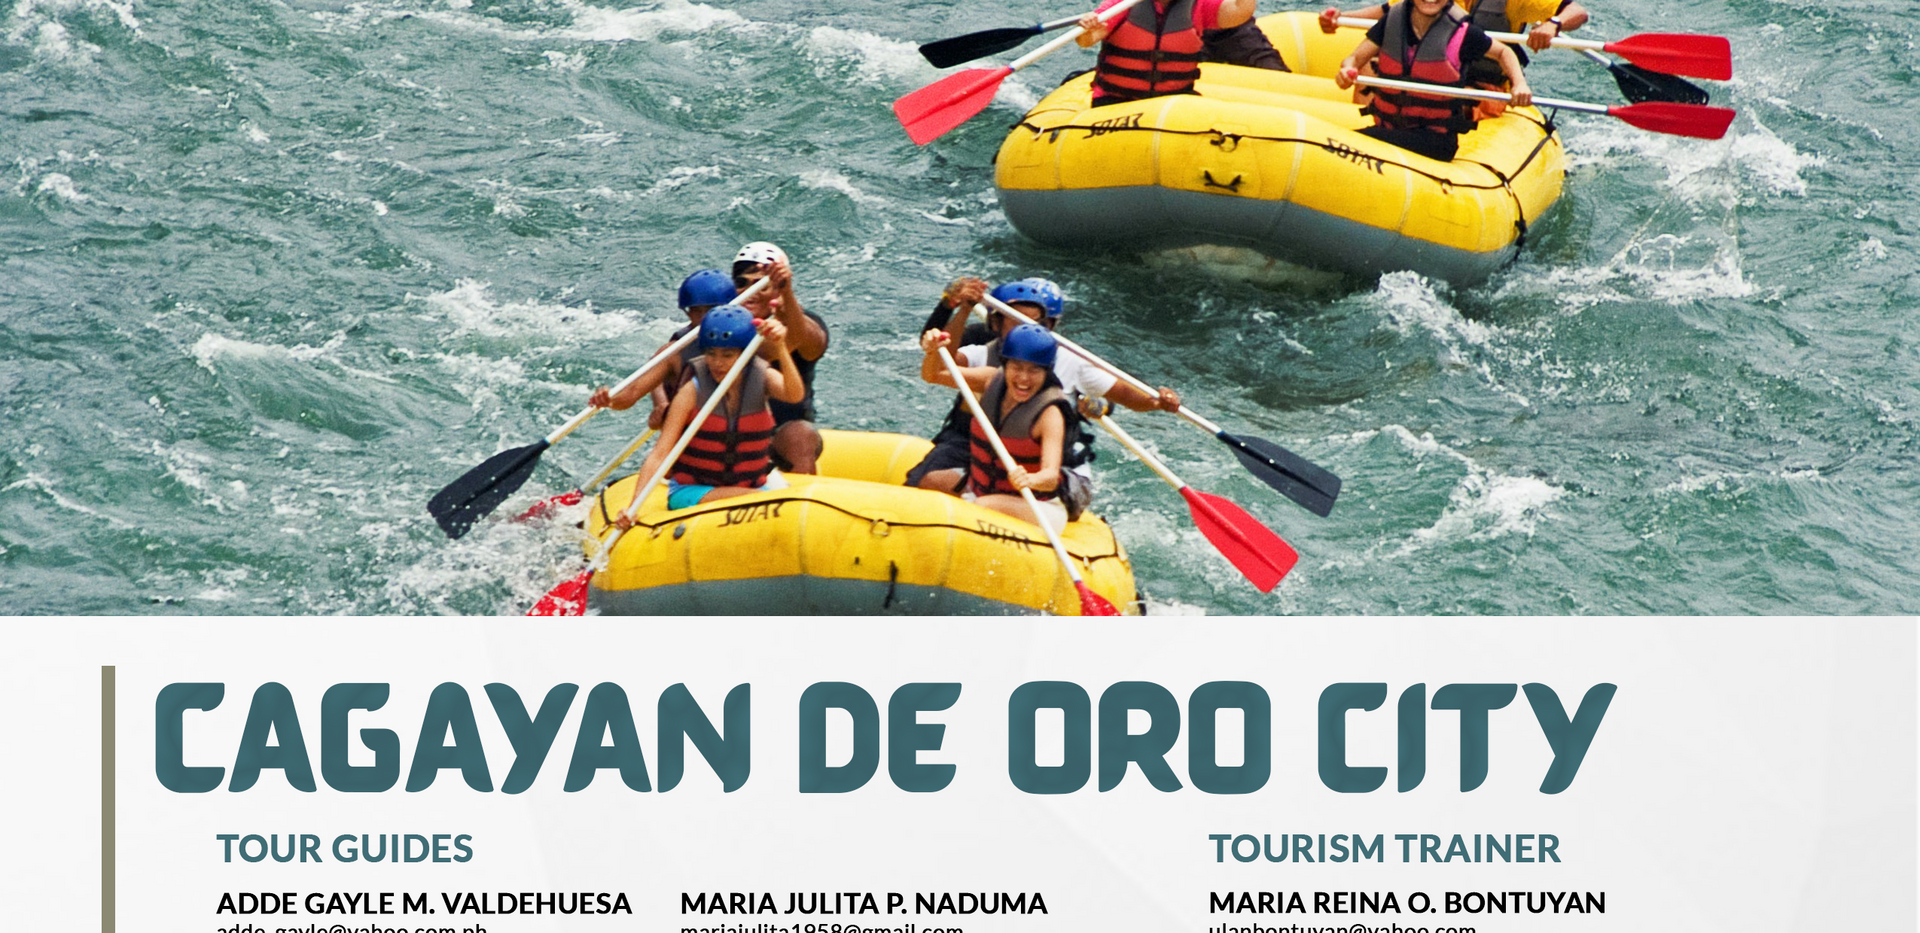 Cagayan de Oro Accred Poster 5.png